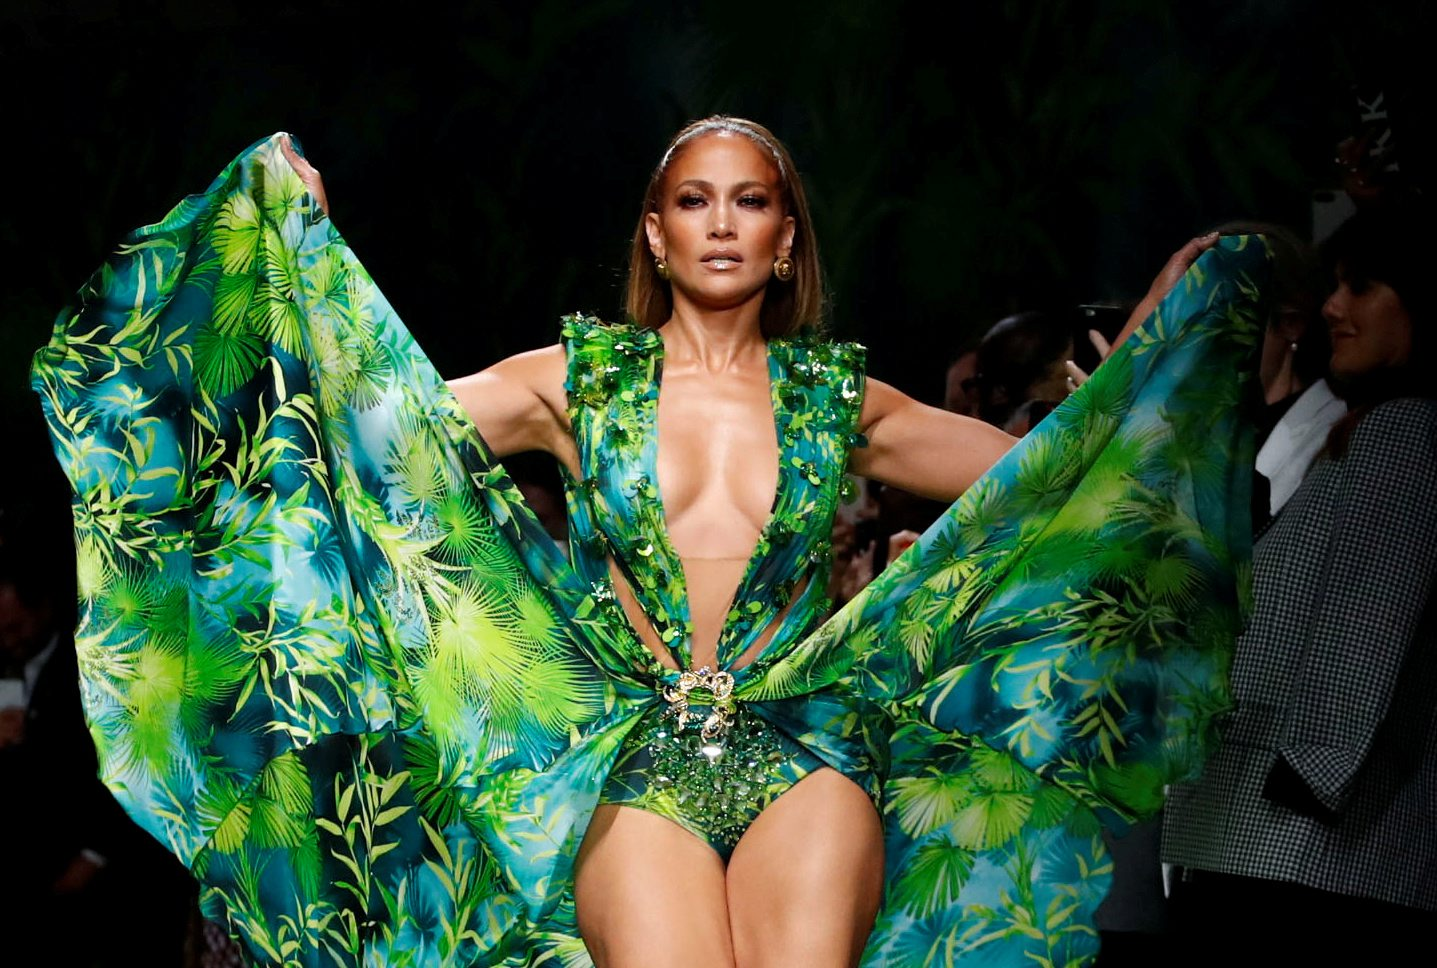 FILE PHOTO: Jennifer Lopez presents a creation from the Versace Spring/Summer 2020 collection during fashion week in Milan, Italy September 20, 2019. REUTERS/Alessandro Garofalo/File Photo